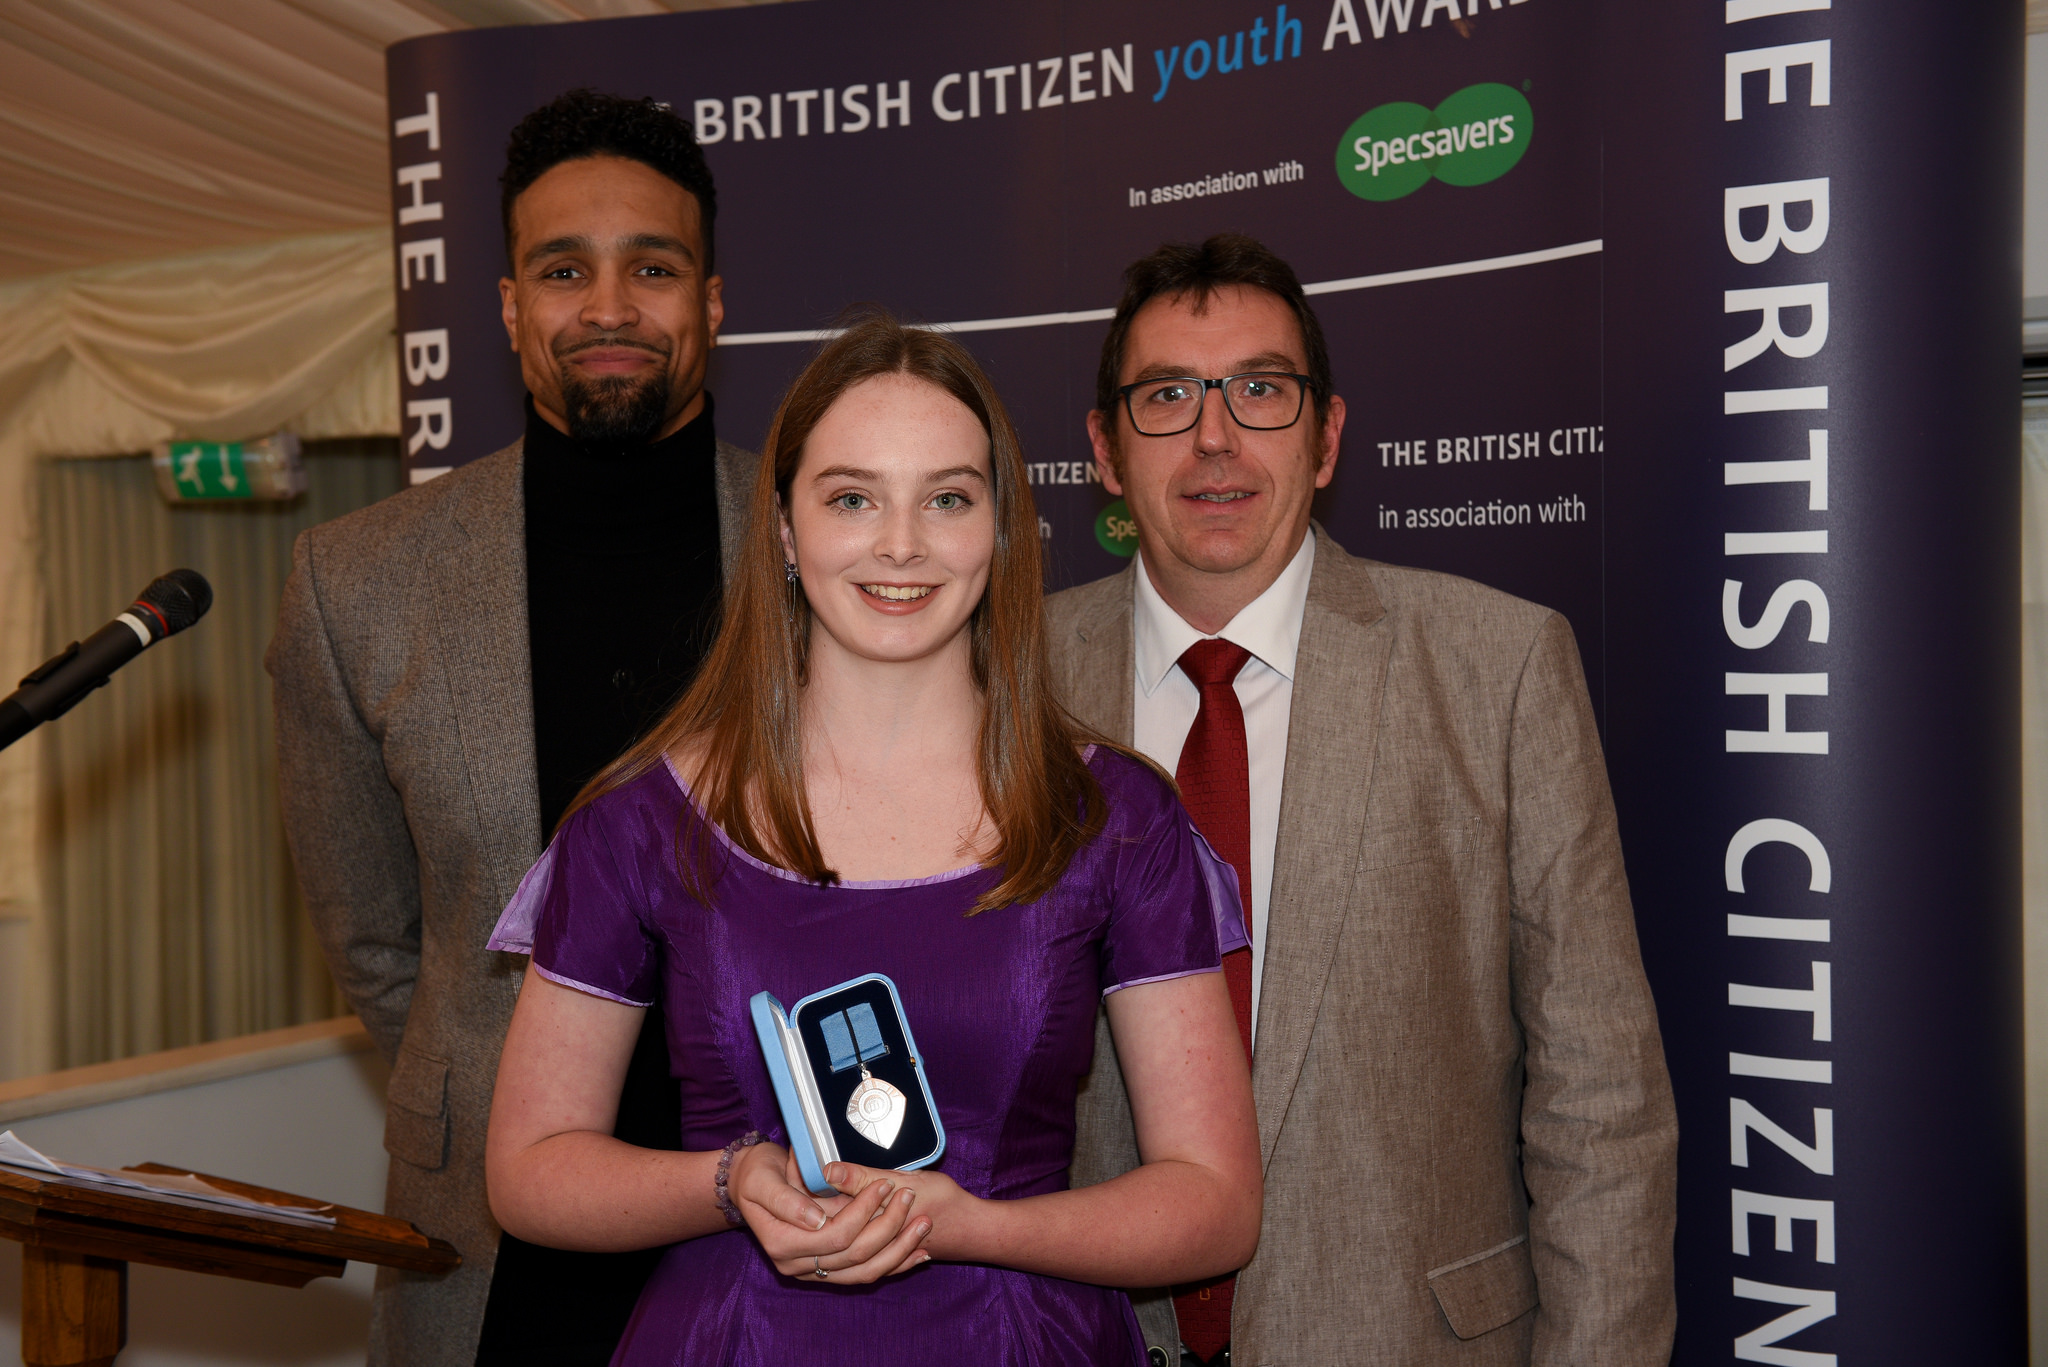 Citizen Youth On Kiaragh Citizen Youth Award Prince Henrys High School